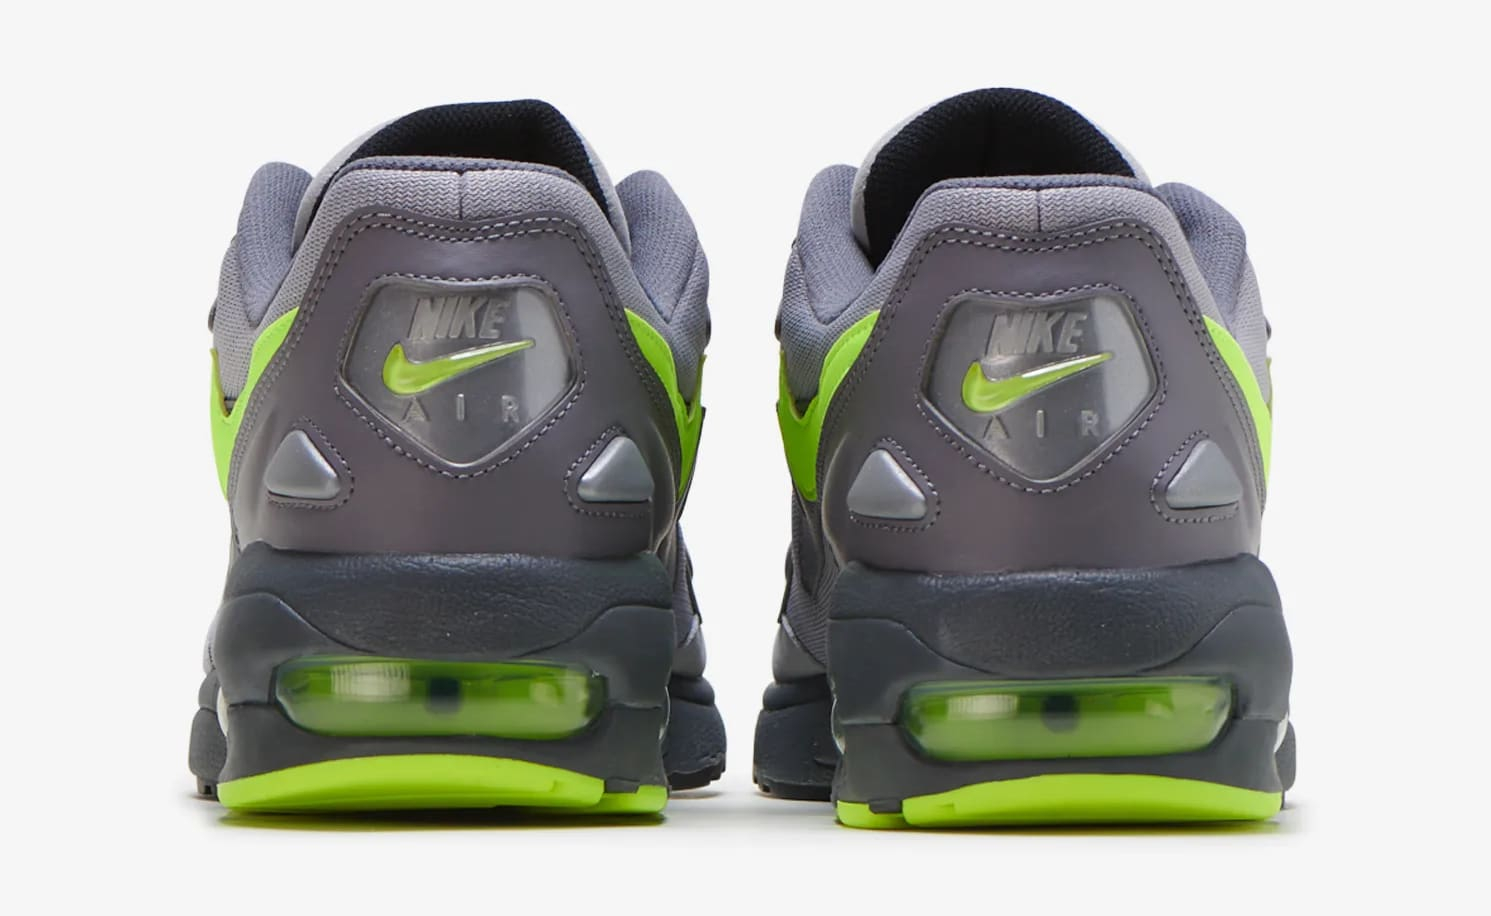 Nike Air Max2 Light 'Volt' CJ0547-001 (Heel)